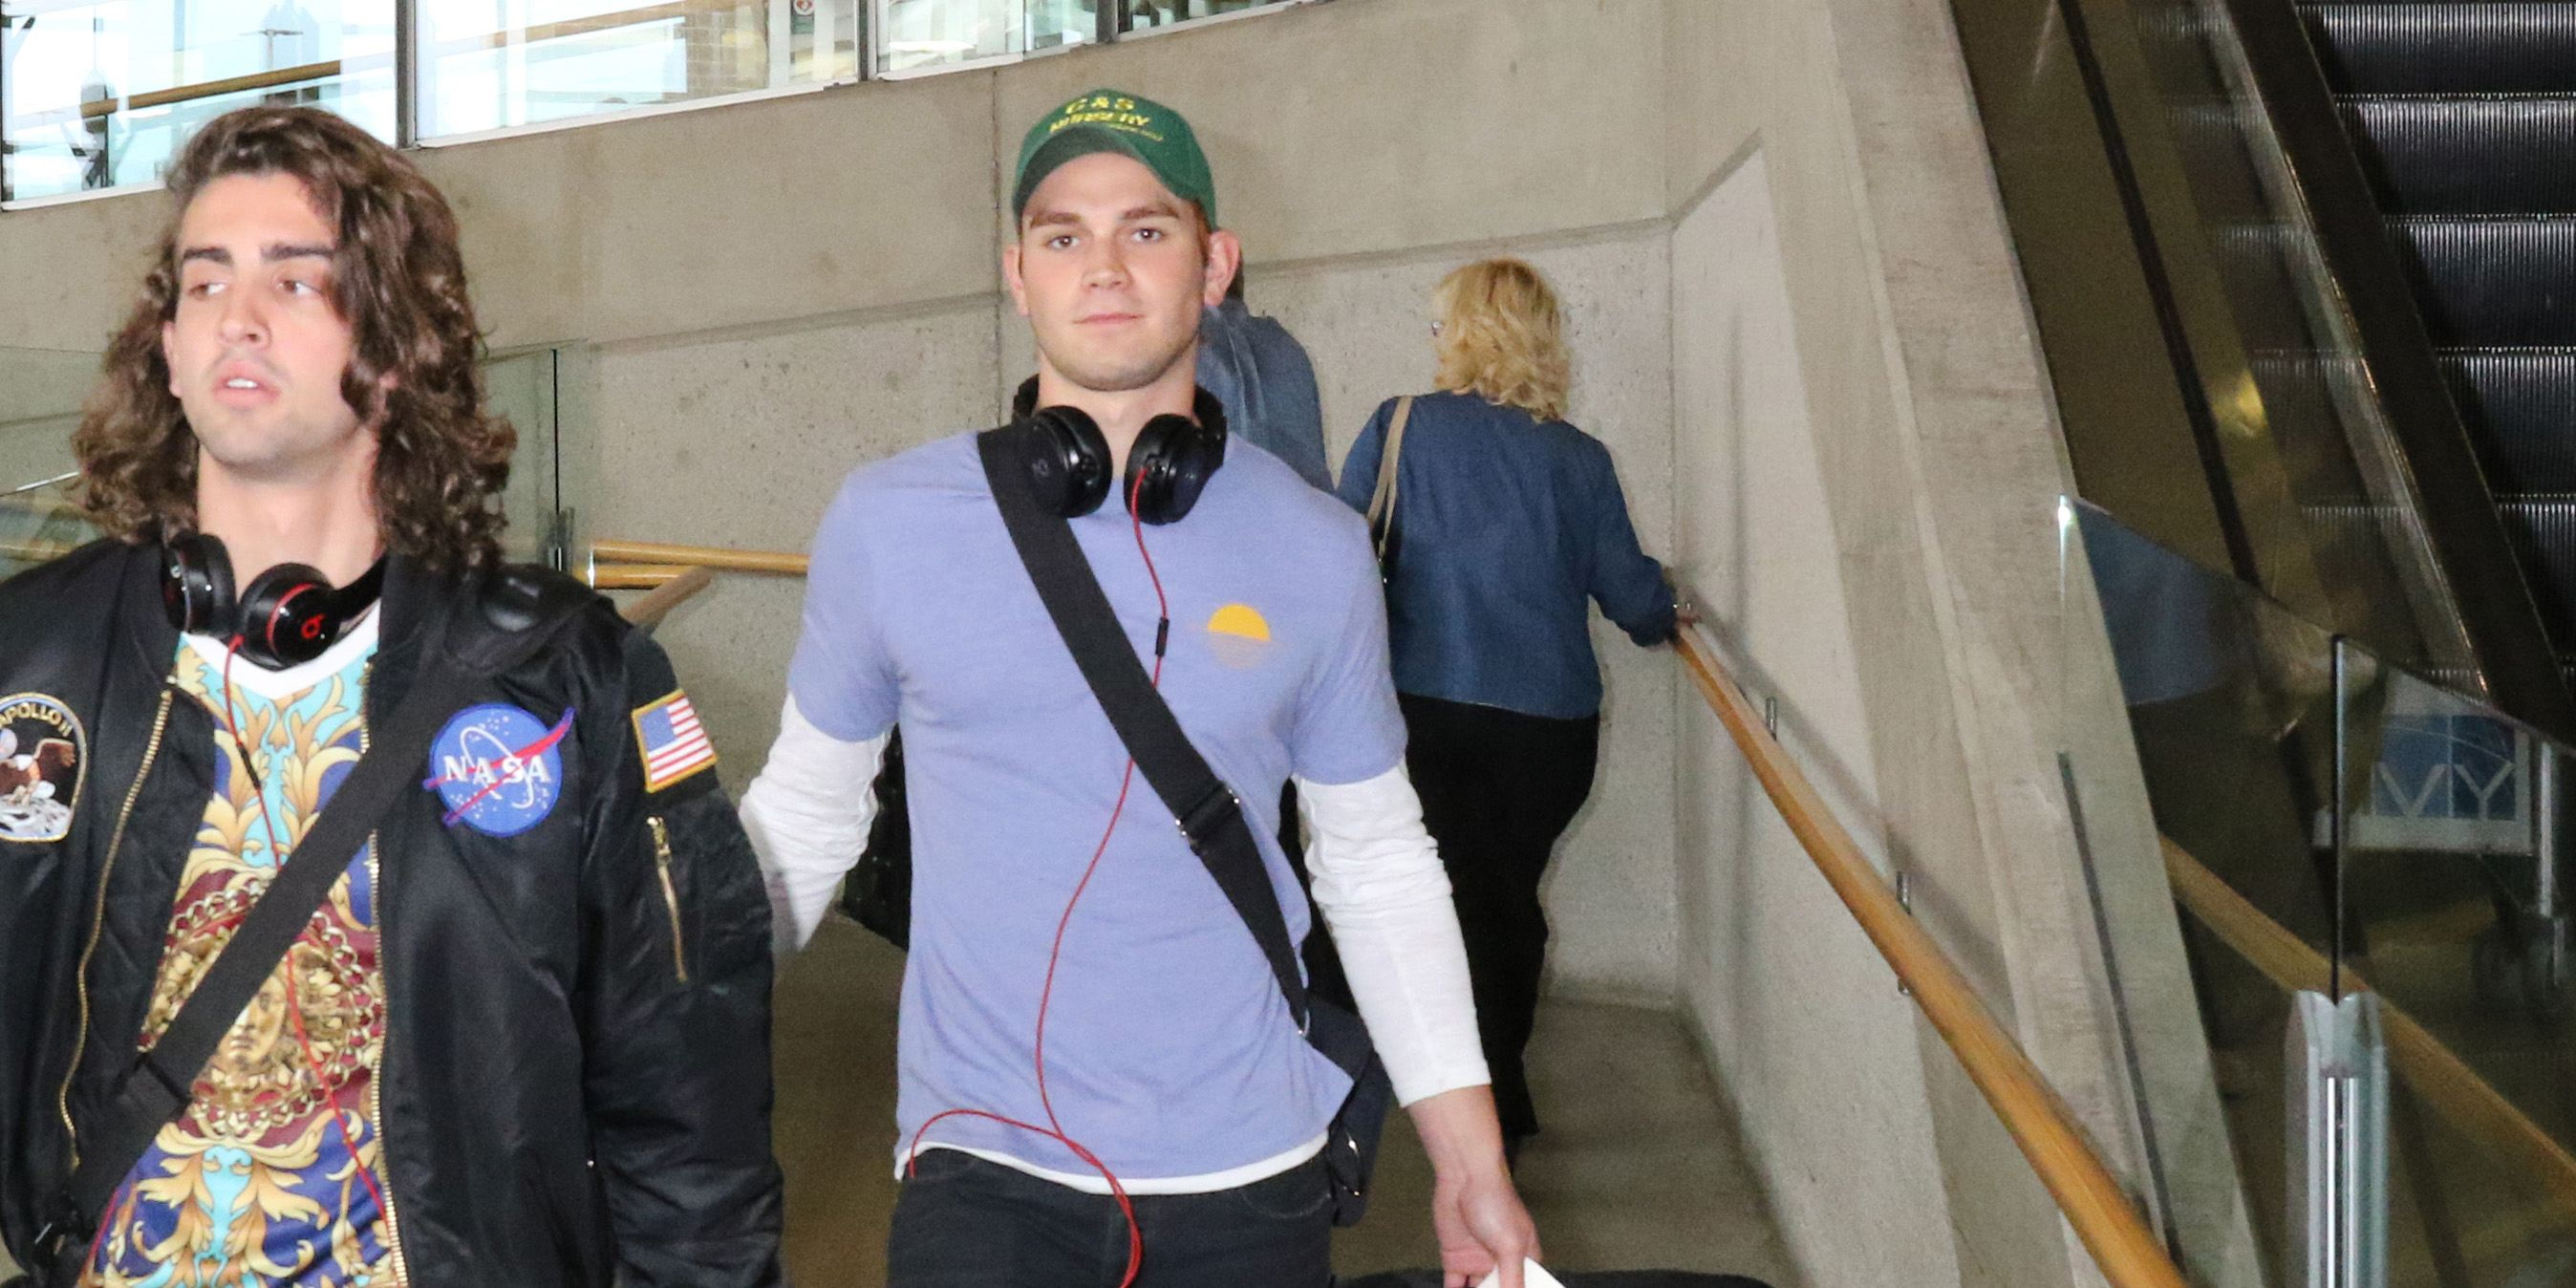 KJ Apa arrives in Vancouver to begin filming 'Riverdale' season 2 (PHOTOS)